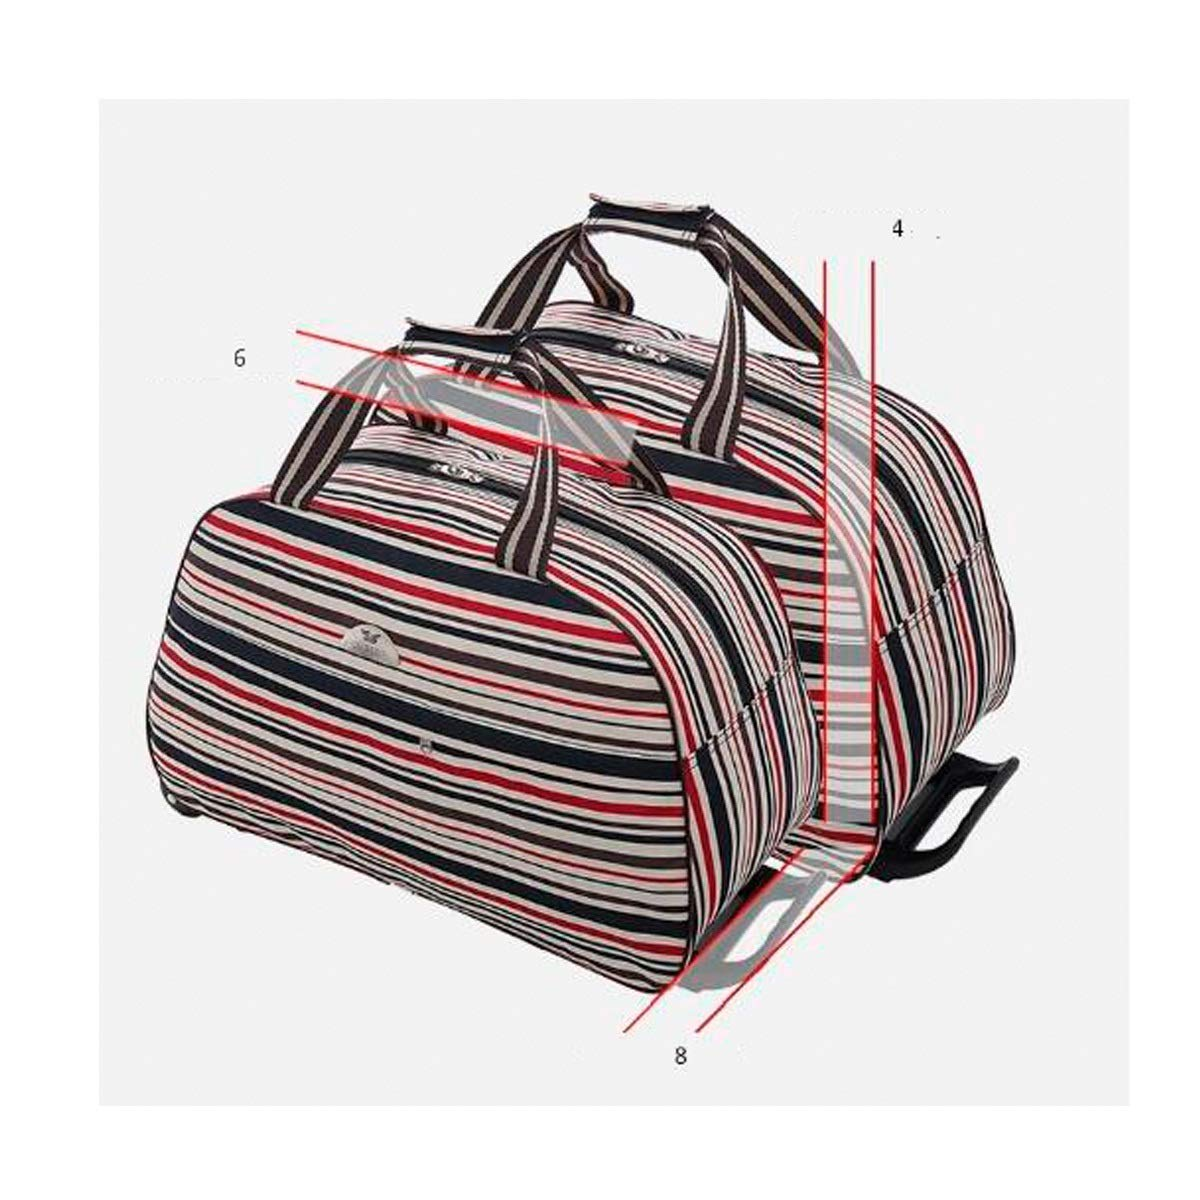 20 inches Travel case Suitcase,Handbag Travel Storage Bag Color : Red Mickey, Size : 24 Soft Bag Bahaowenjuguan Trolley case